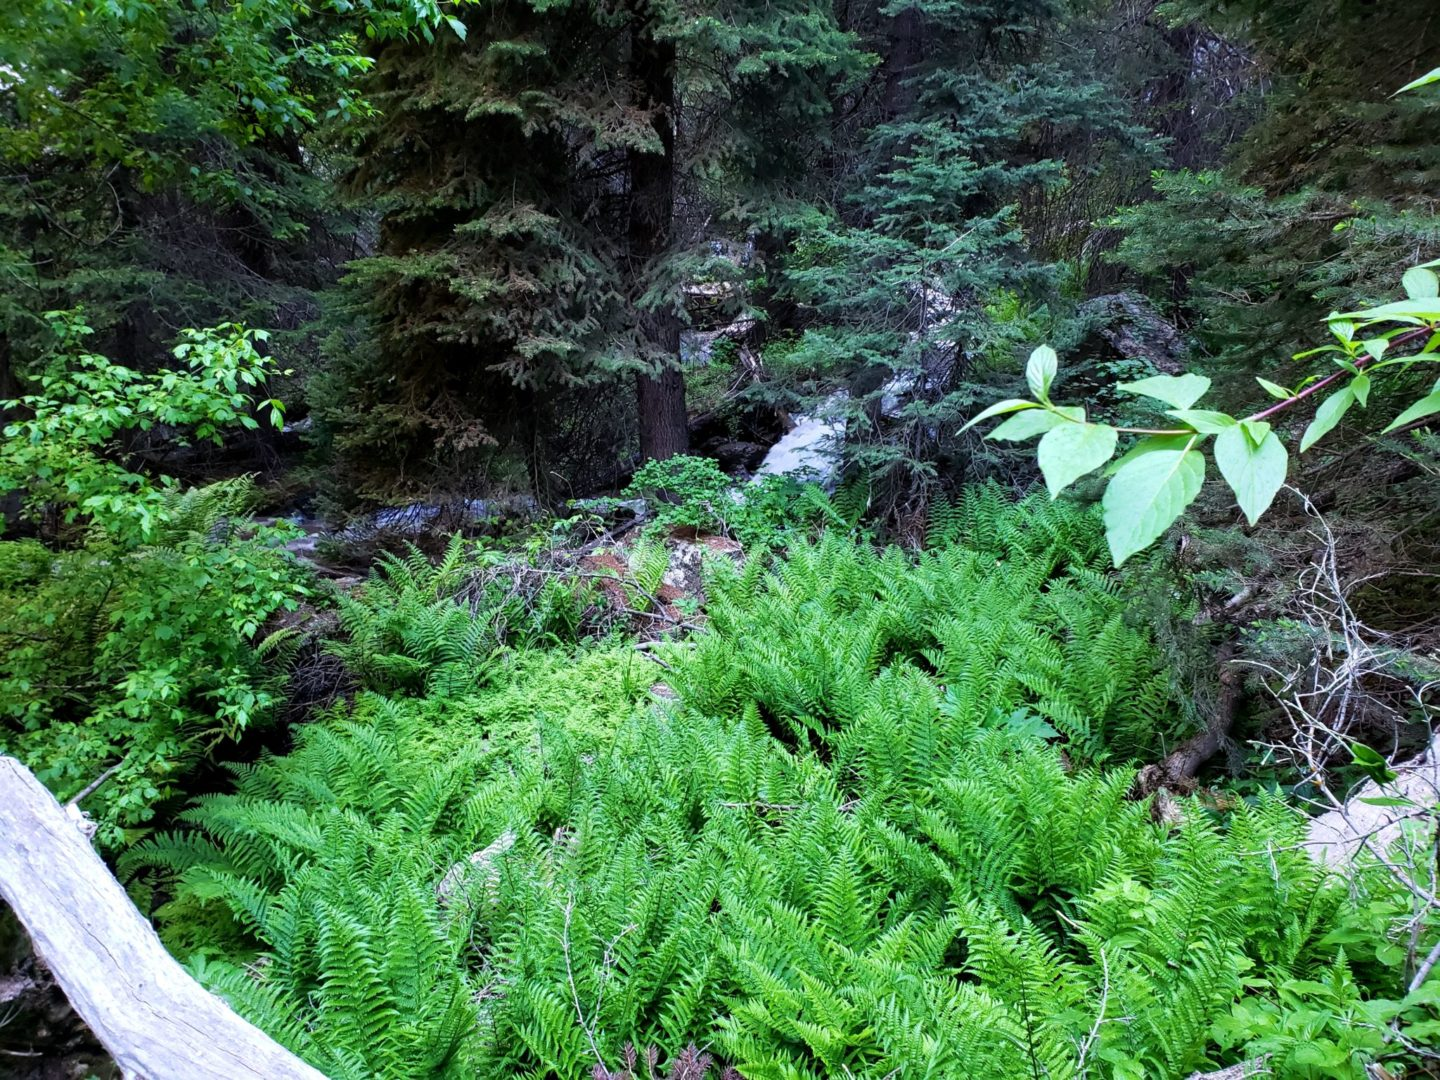 Lush ferns growing in the shade